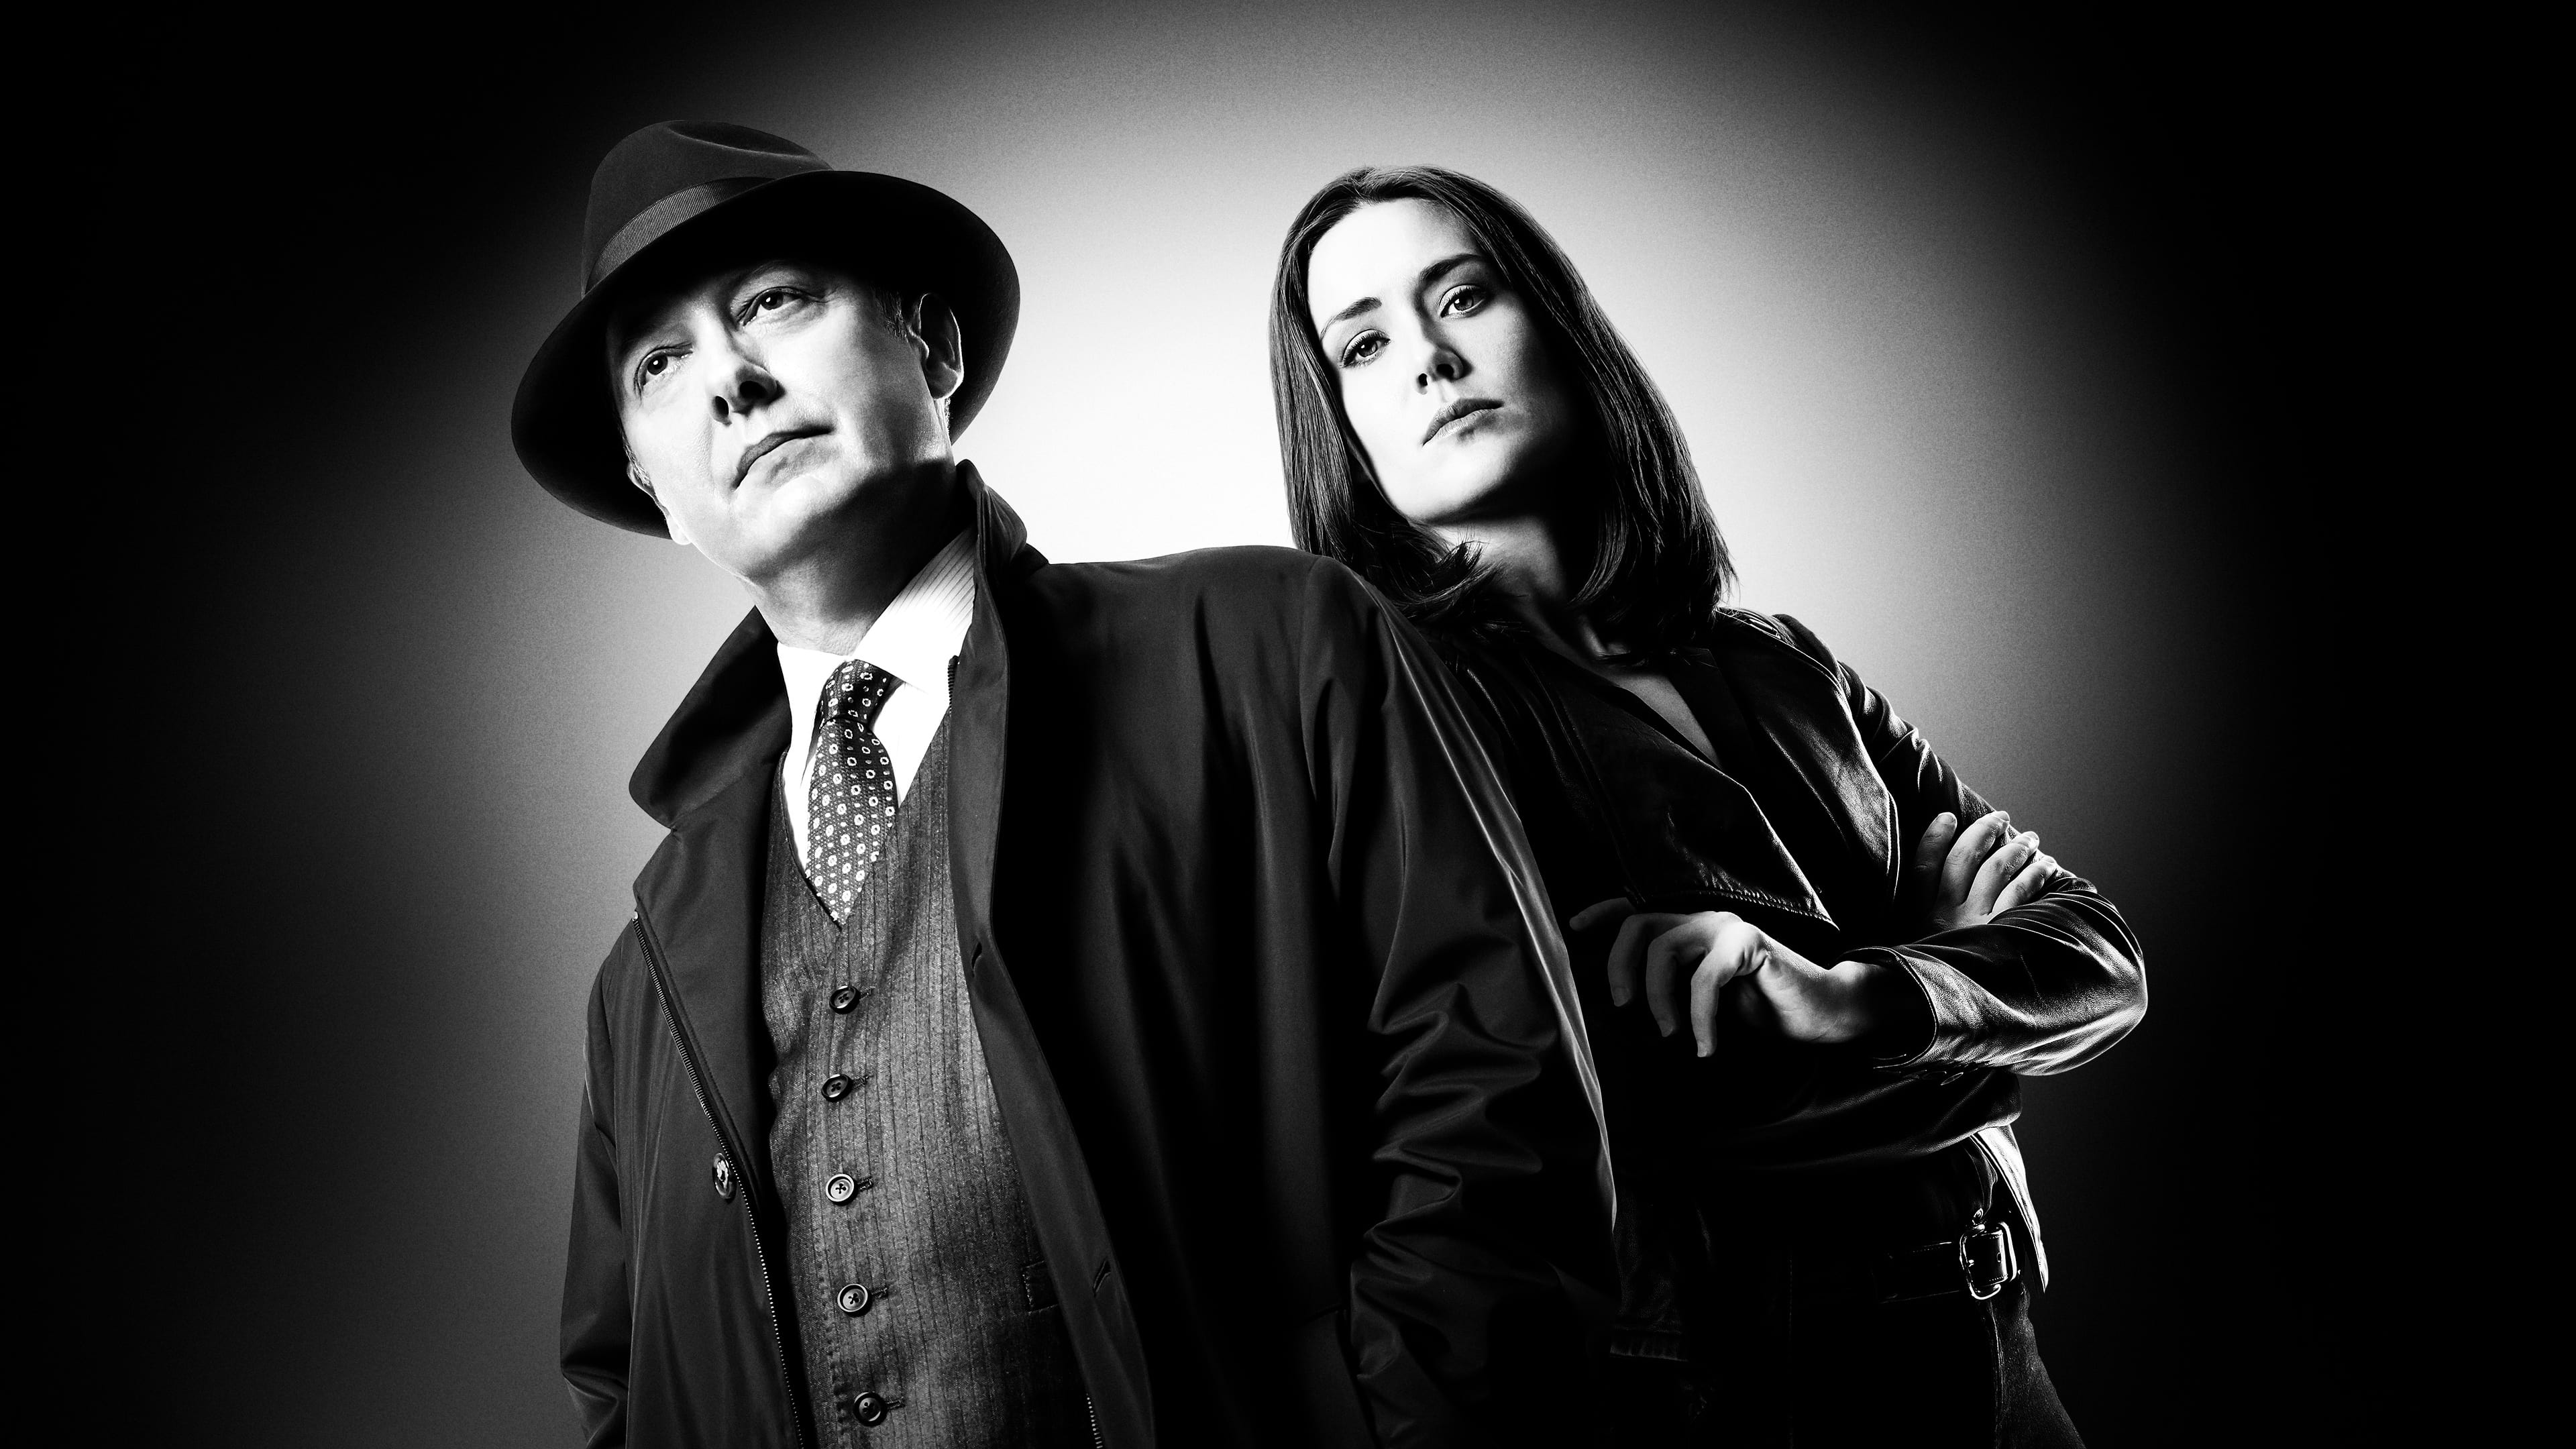 Season finale dates for 'The Blacklist', 'Community', 'Revolution' and more